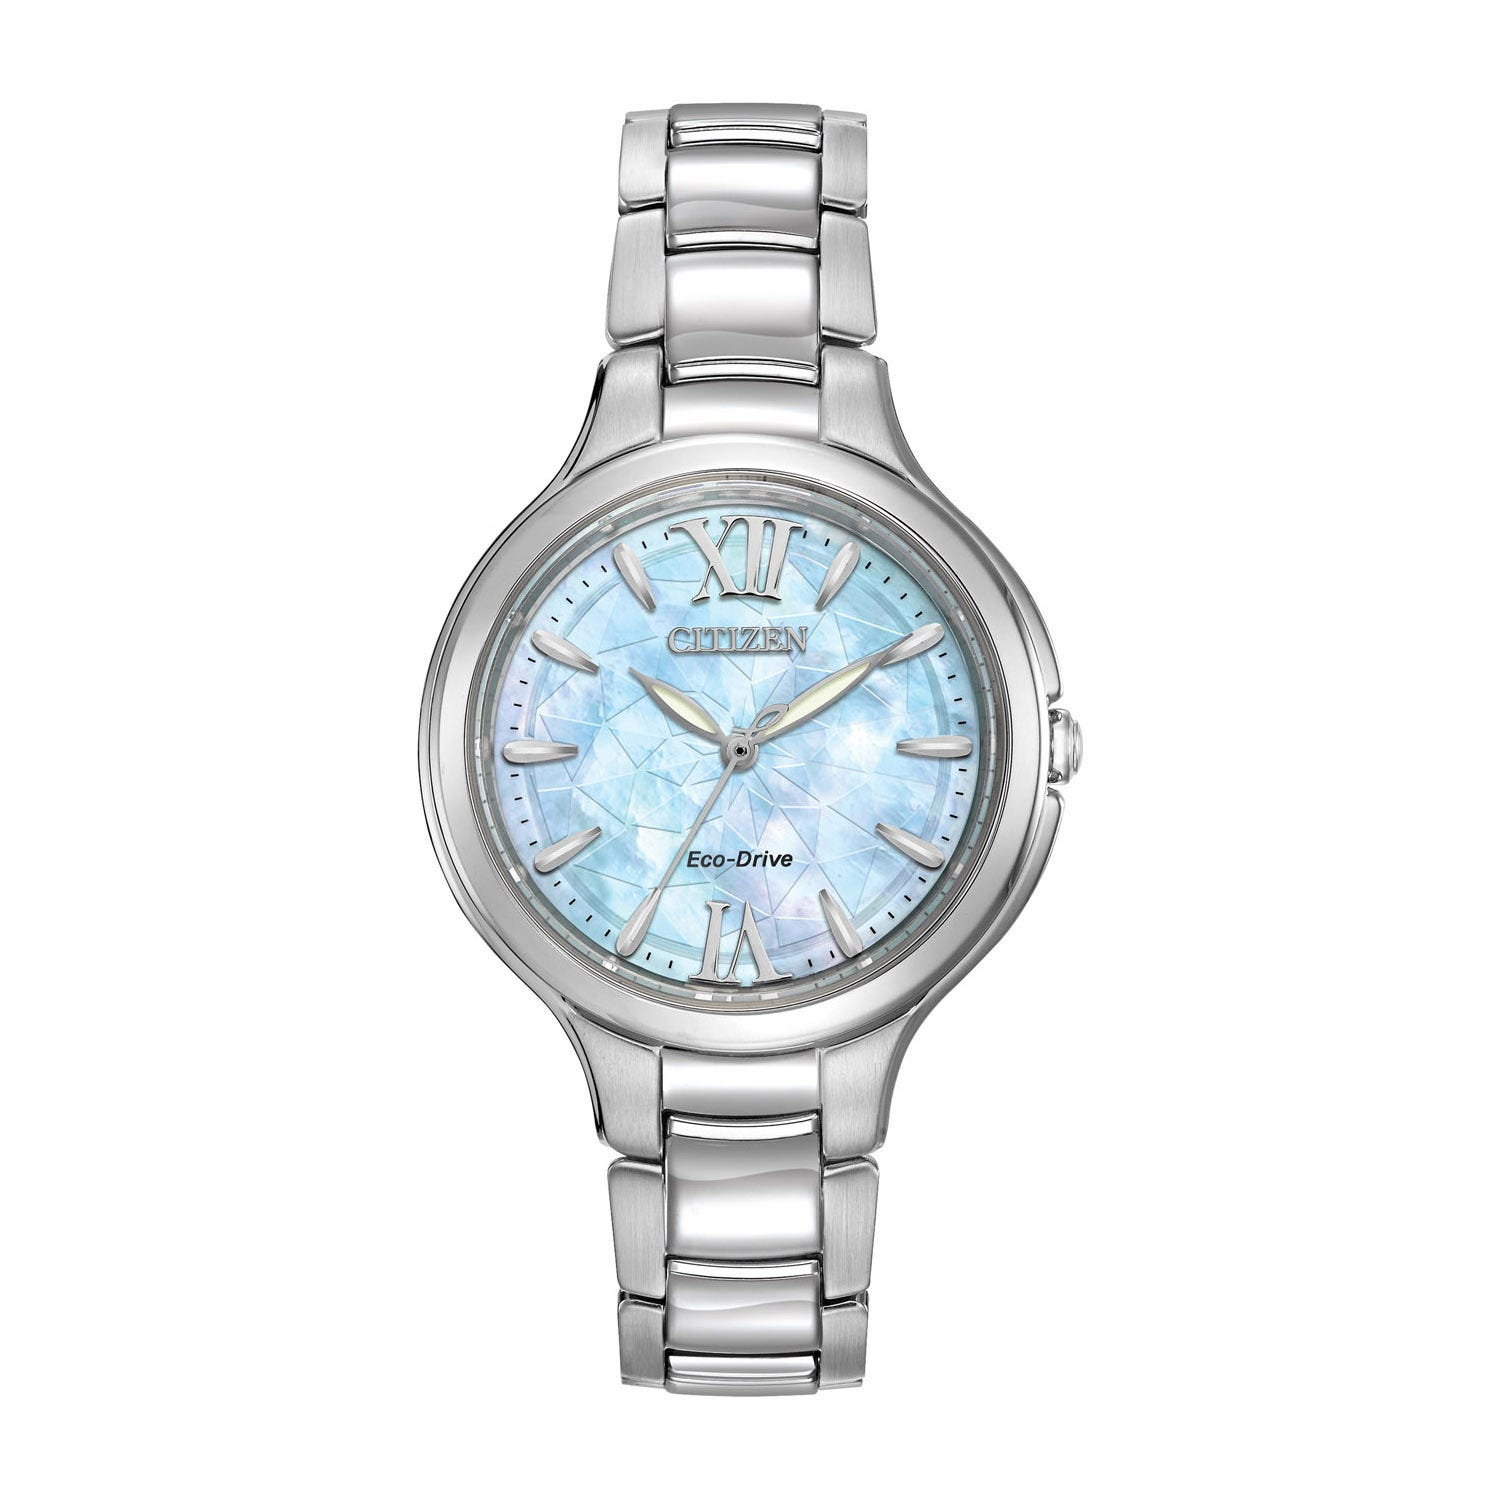 Citizen Eco-Drive Silhouette Crystal ladies' mother of pearl dial Stainless Steel bracelet watch